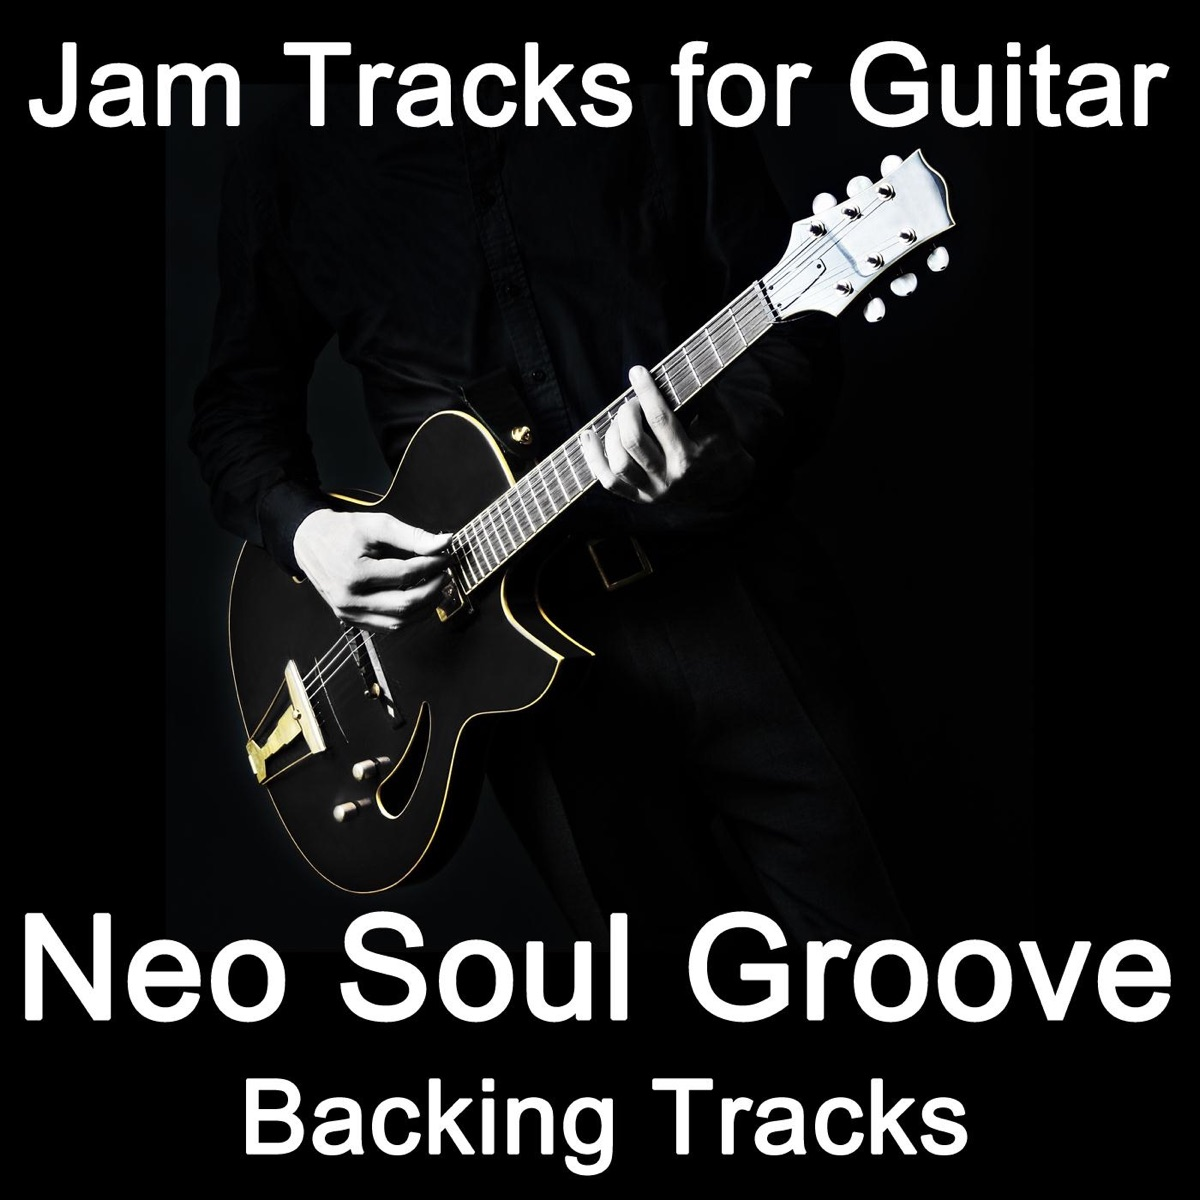 Jam Tracks for Guitar: Neo Soul Groove Album Cover by